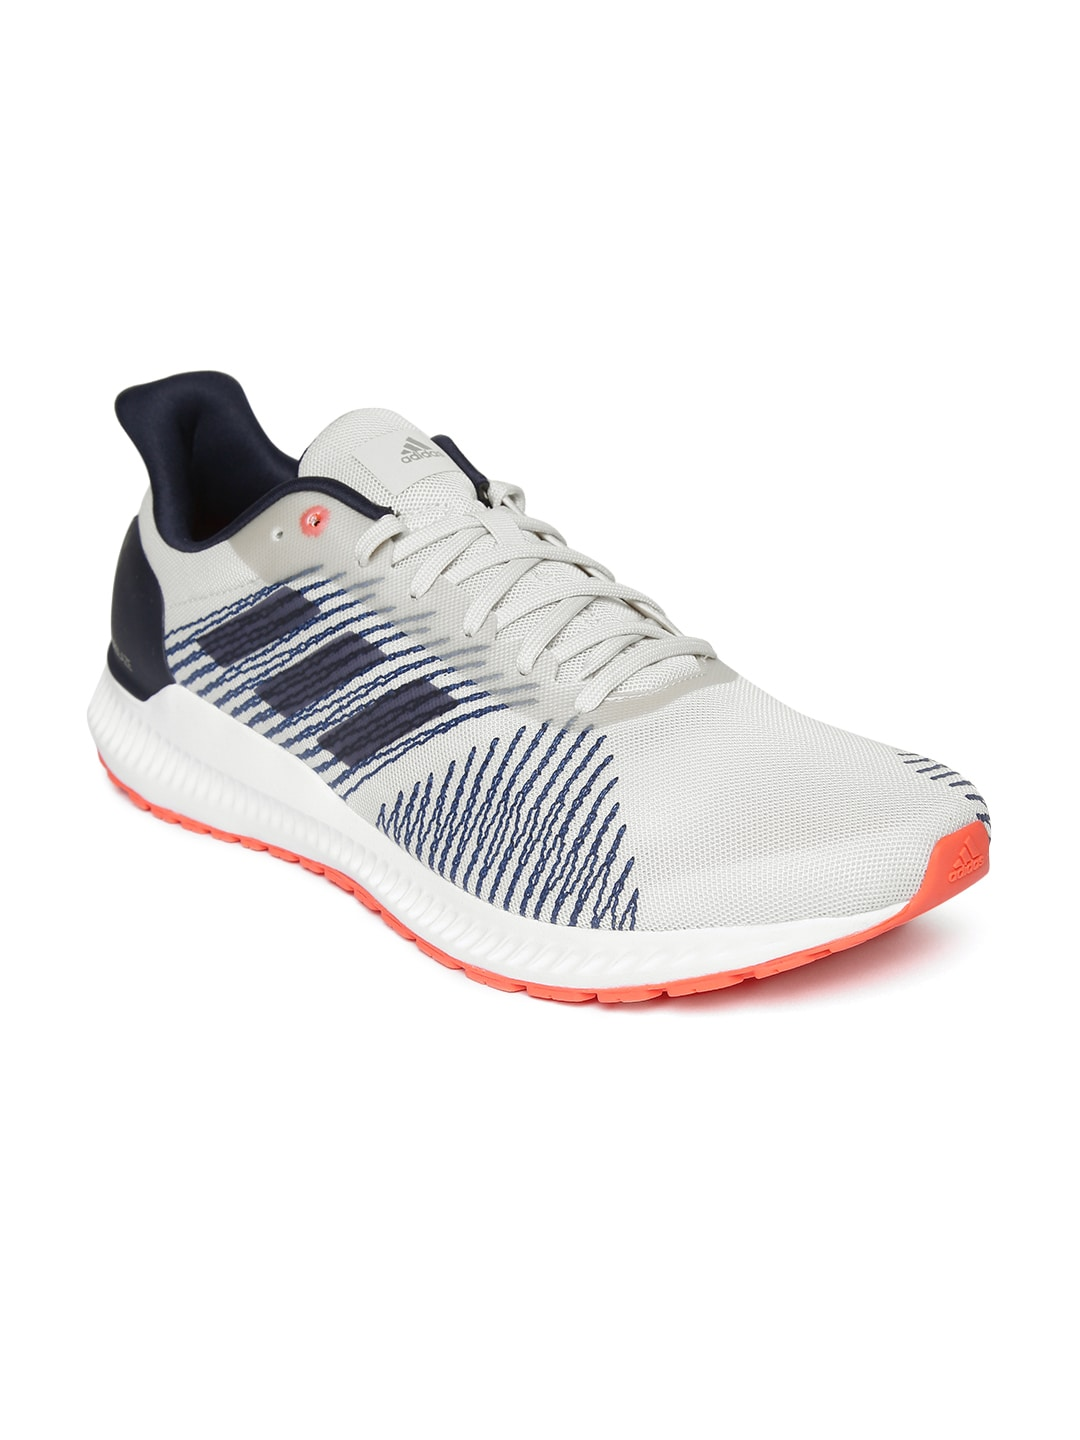 buy popular 84c71 926c3 Adidas Shoes - Buy Adidas Shoes for Men   Women Online - Myntra